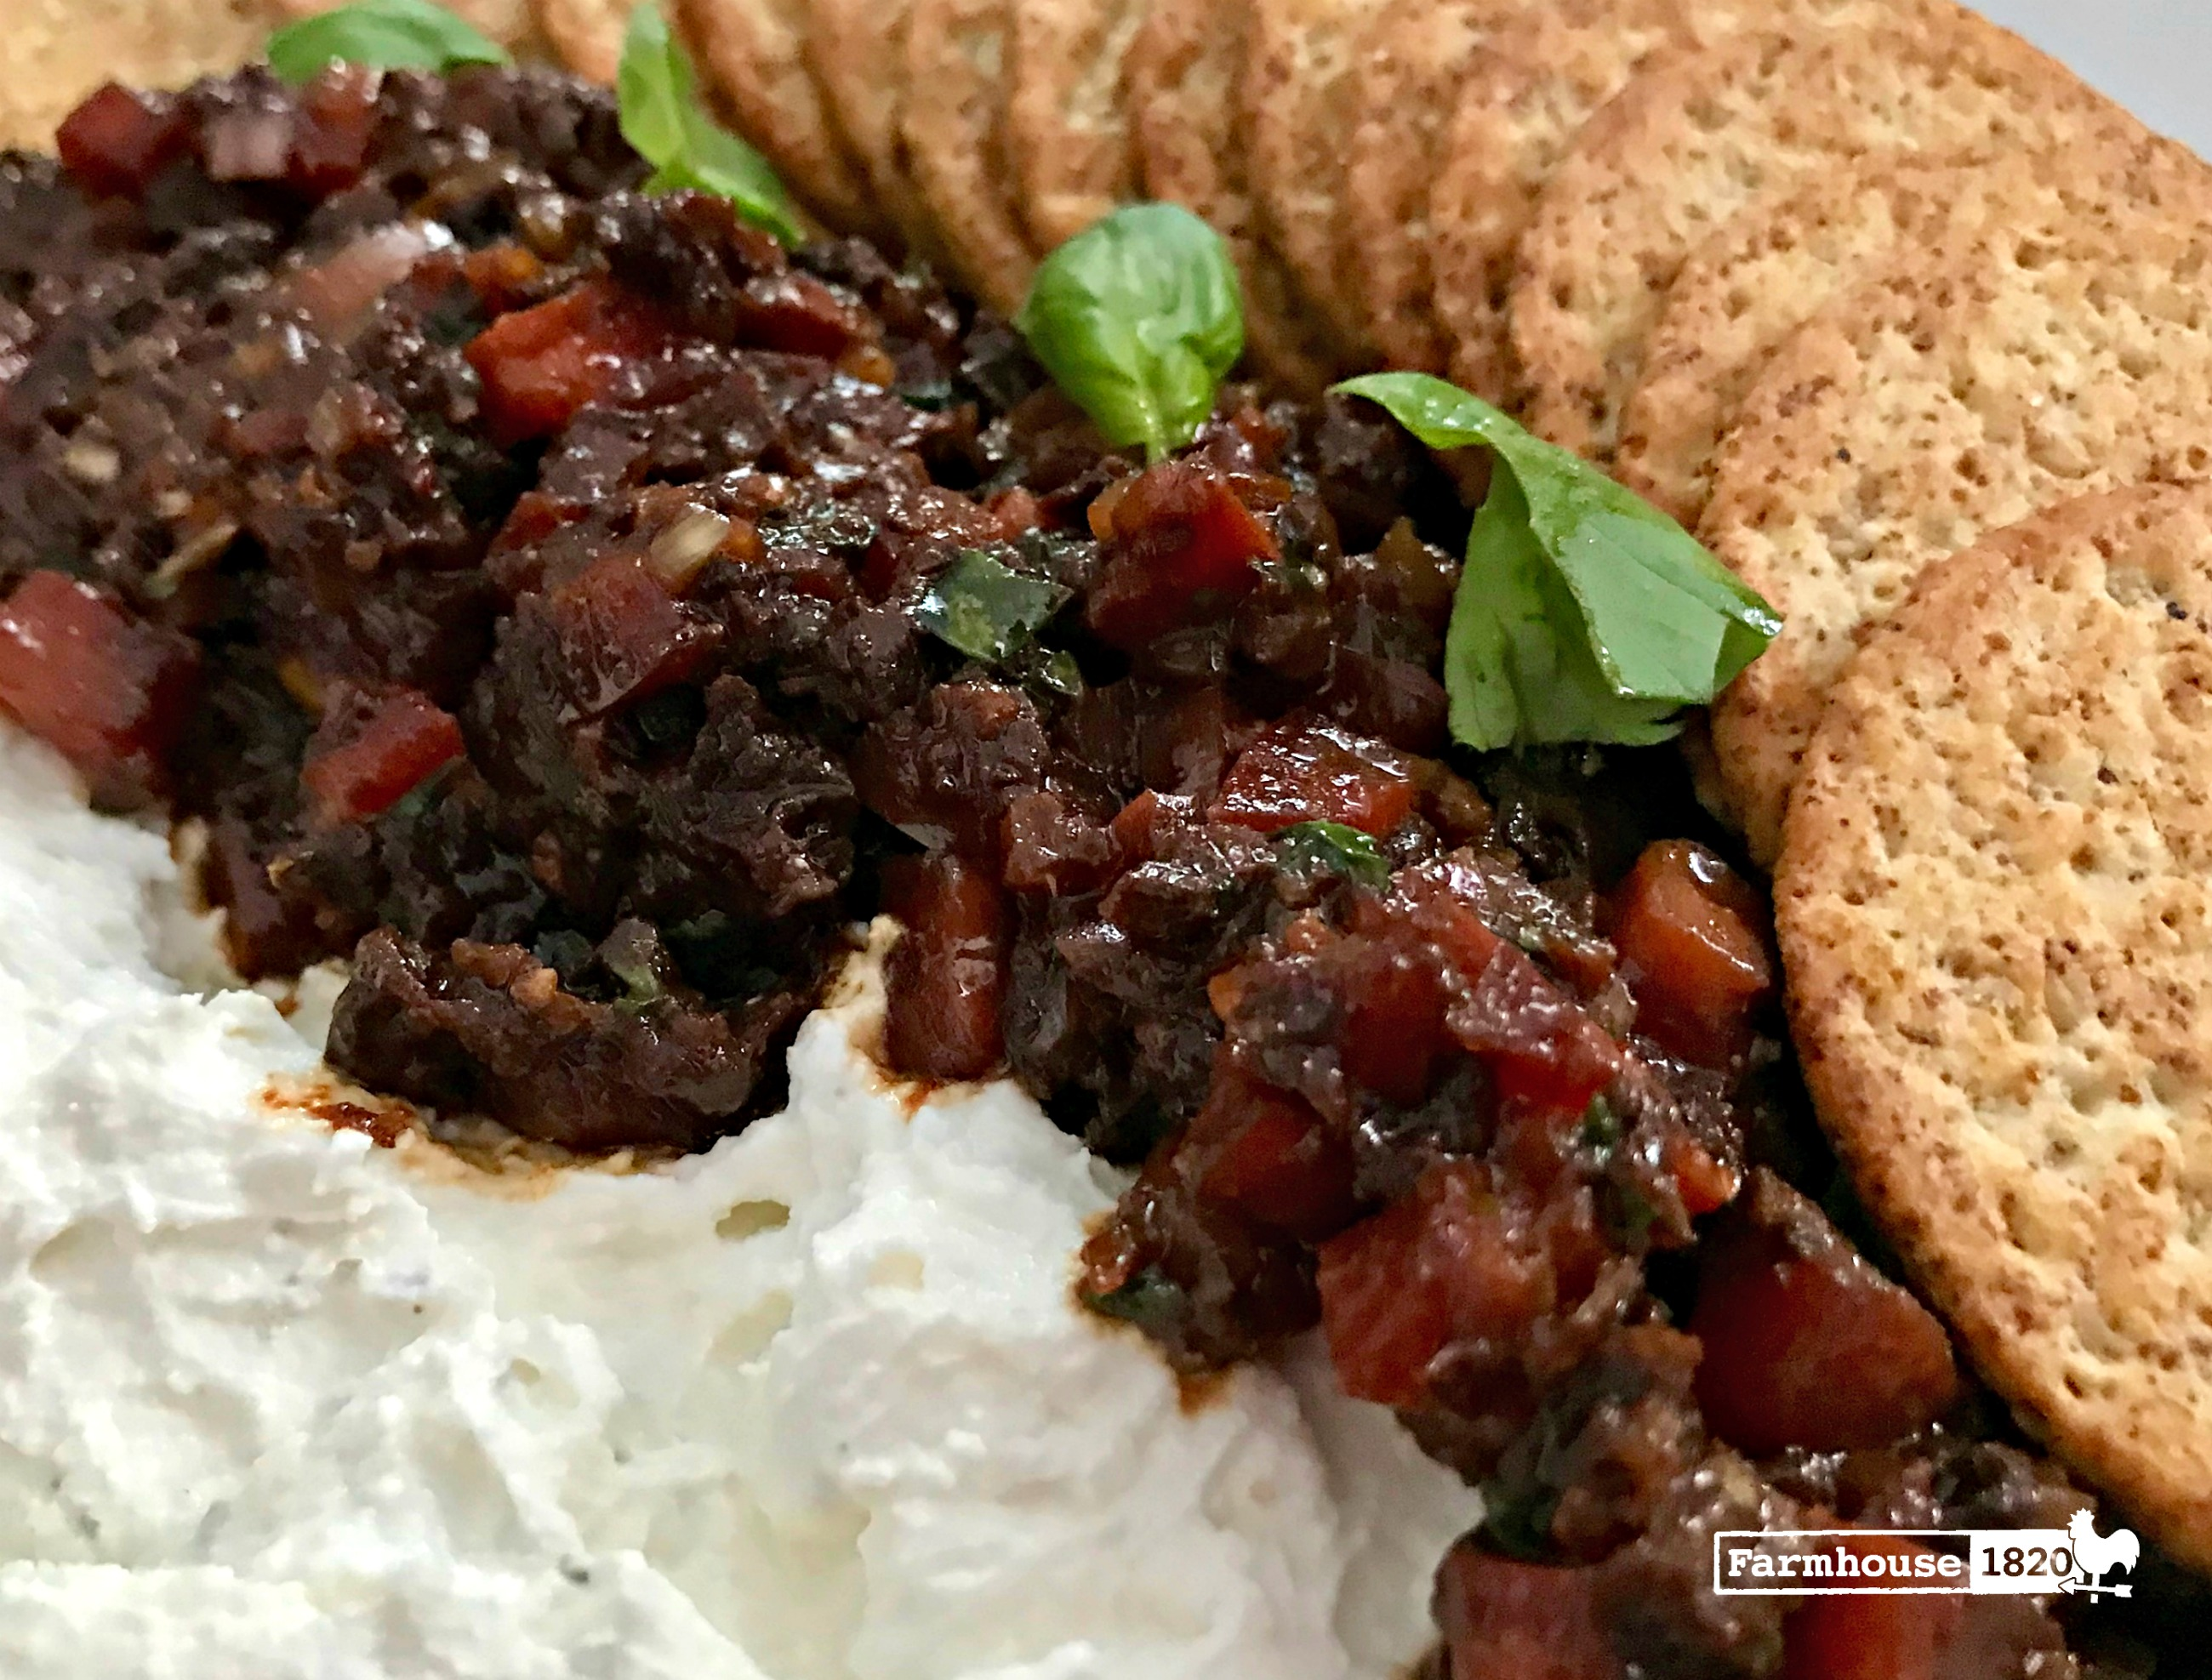 Ricotta Goat Cheese Spread With Sundried Tomato Salsa